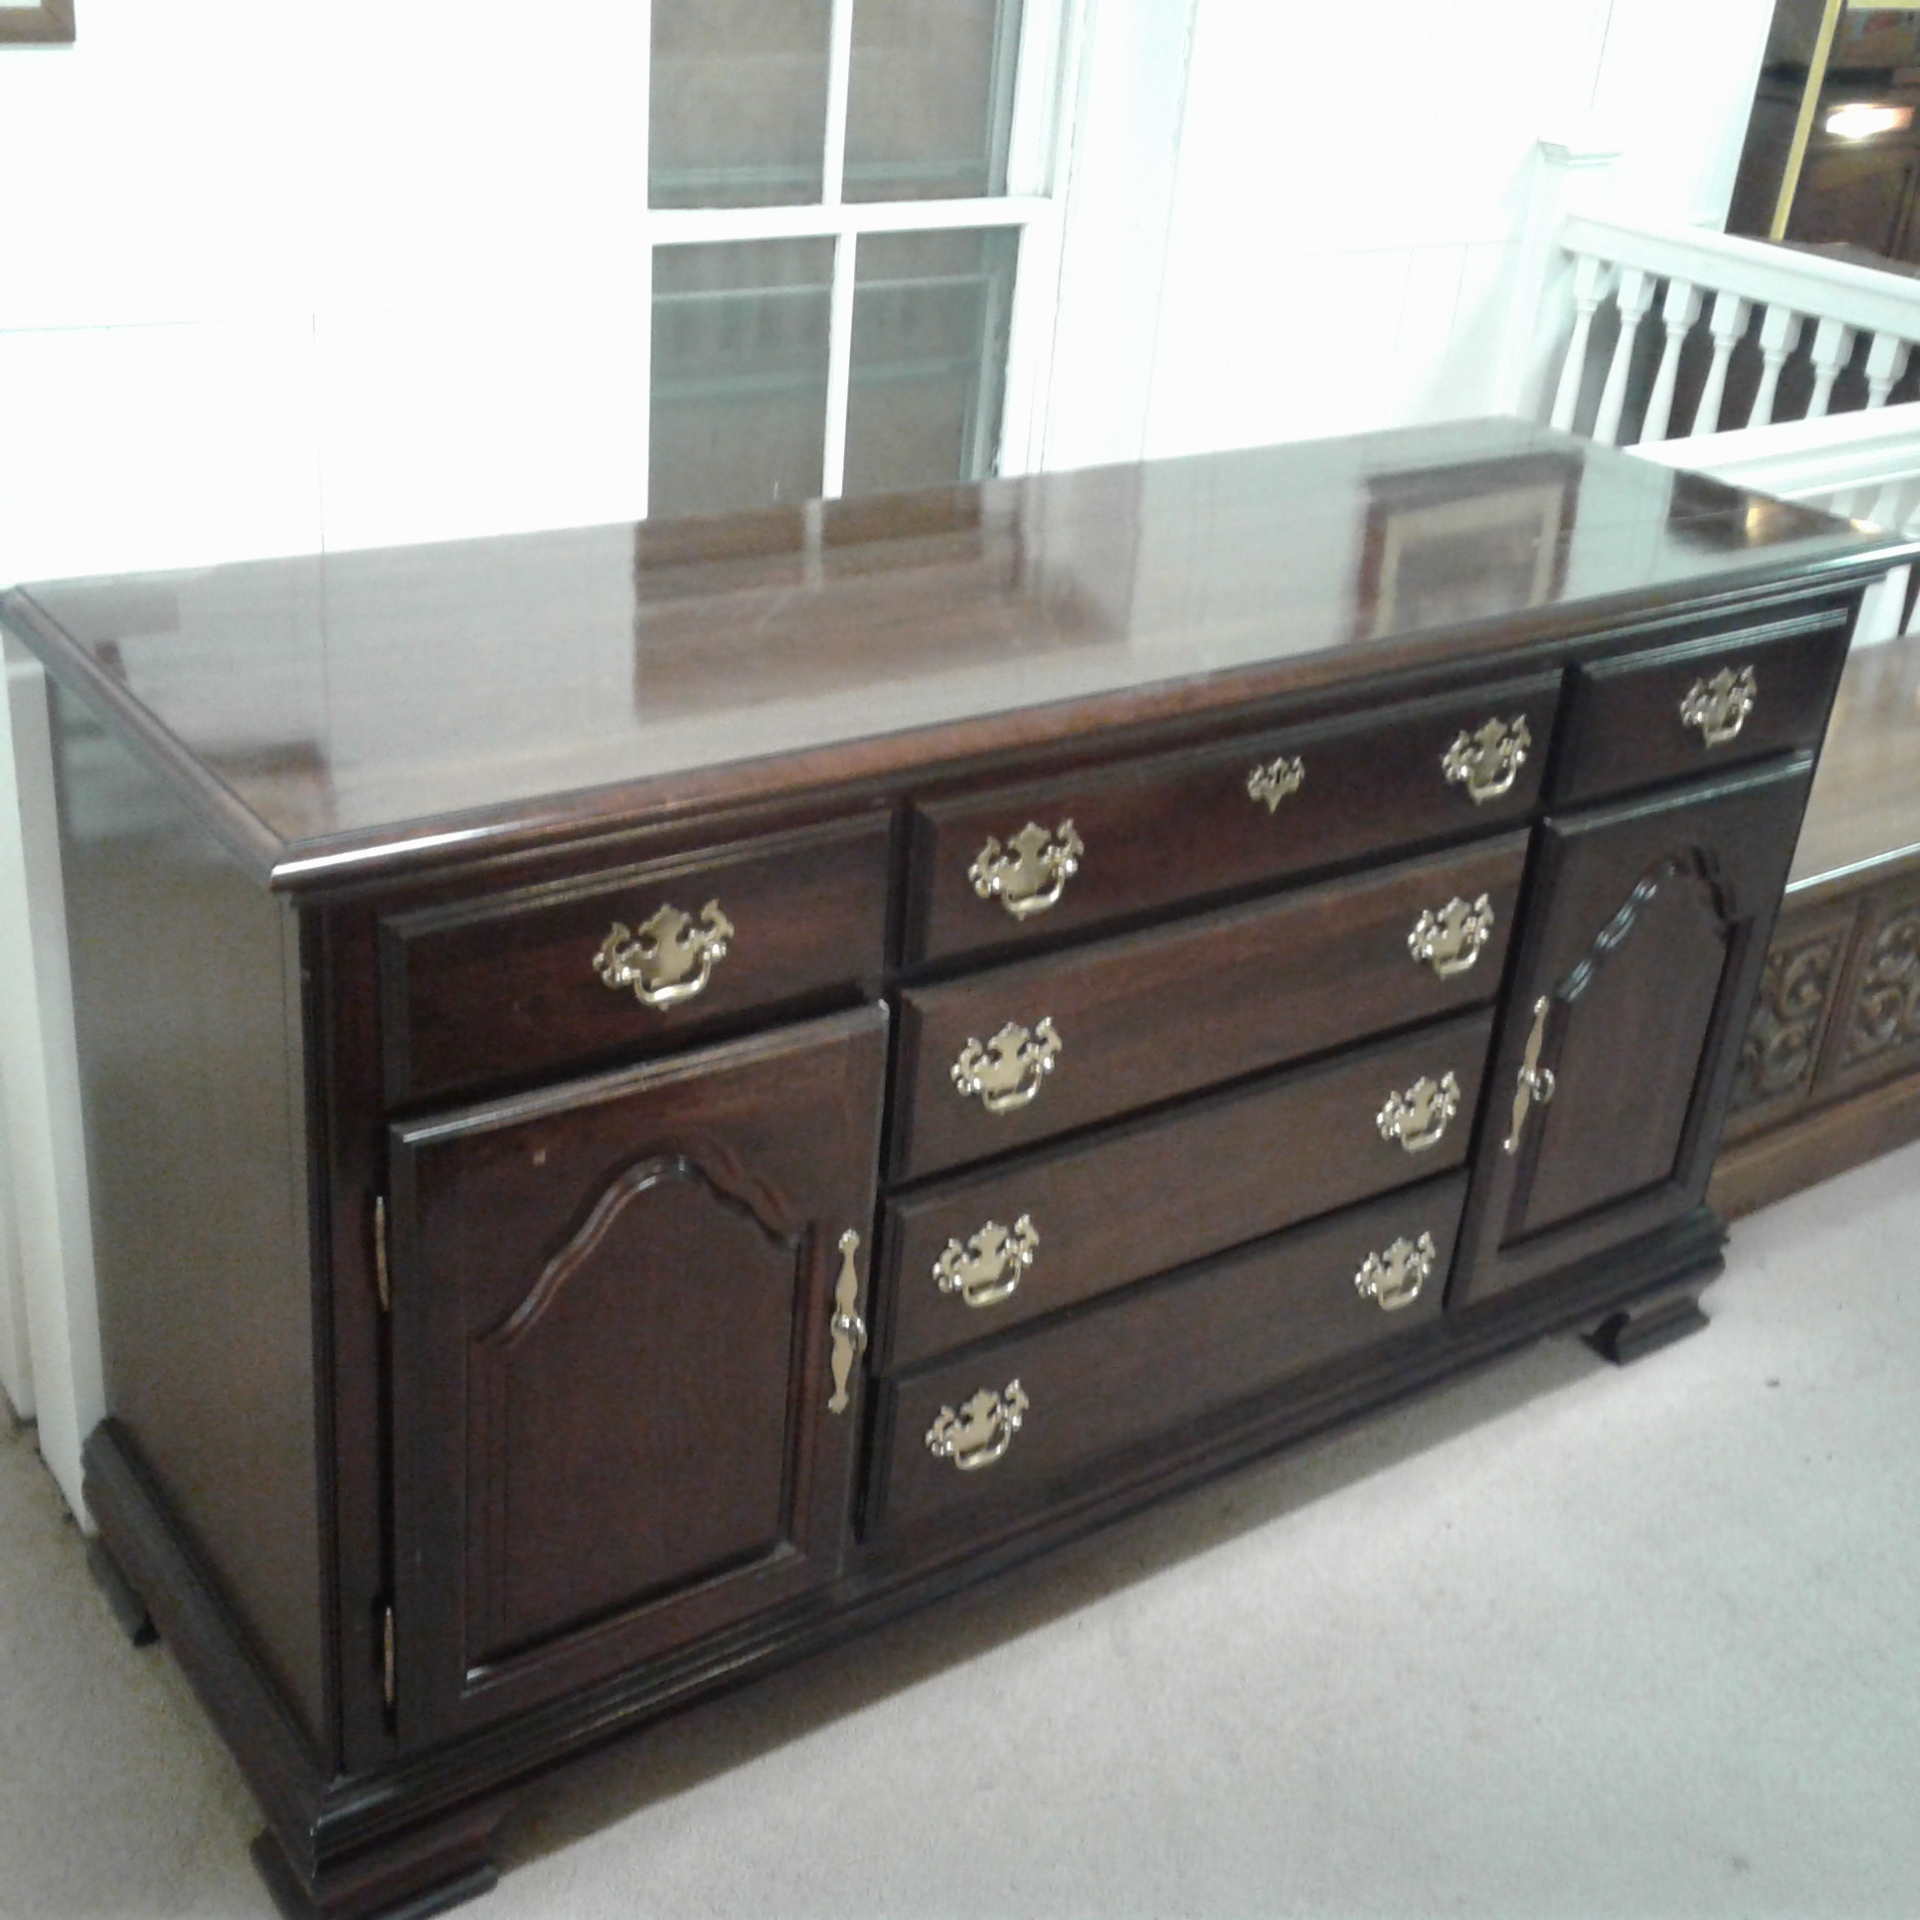 Dining Room Kincaid Furniture Buffet Back To 20180607 122343